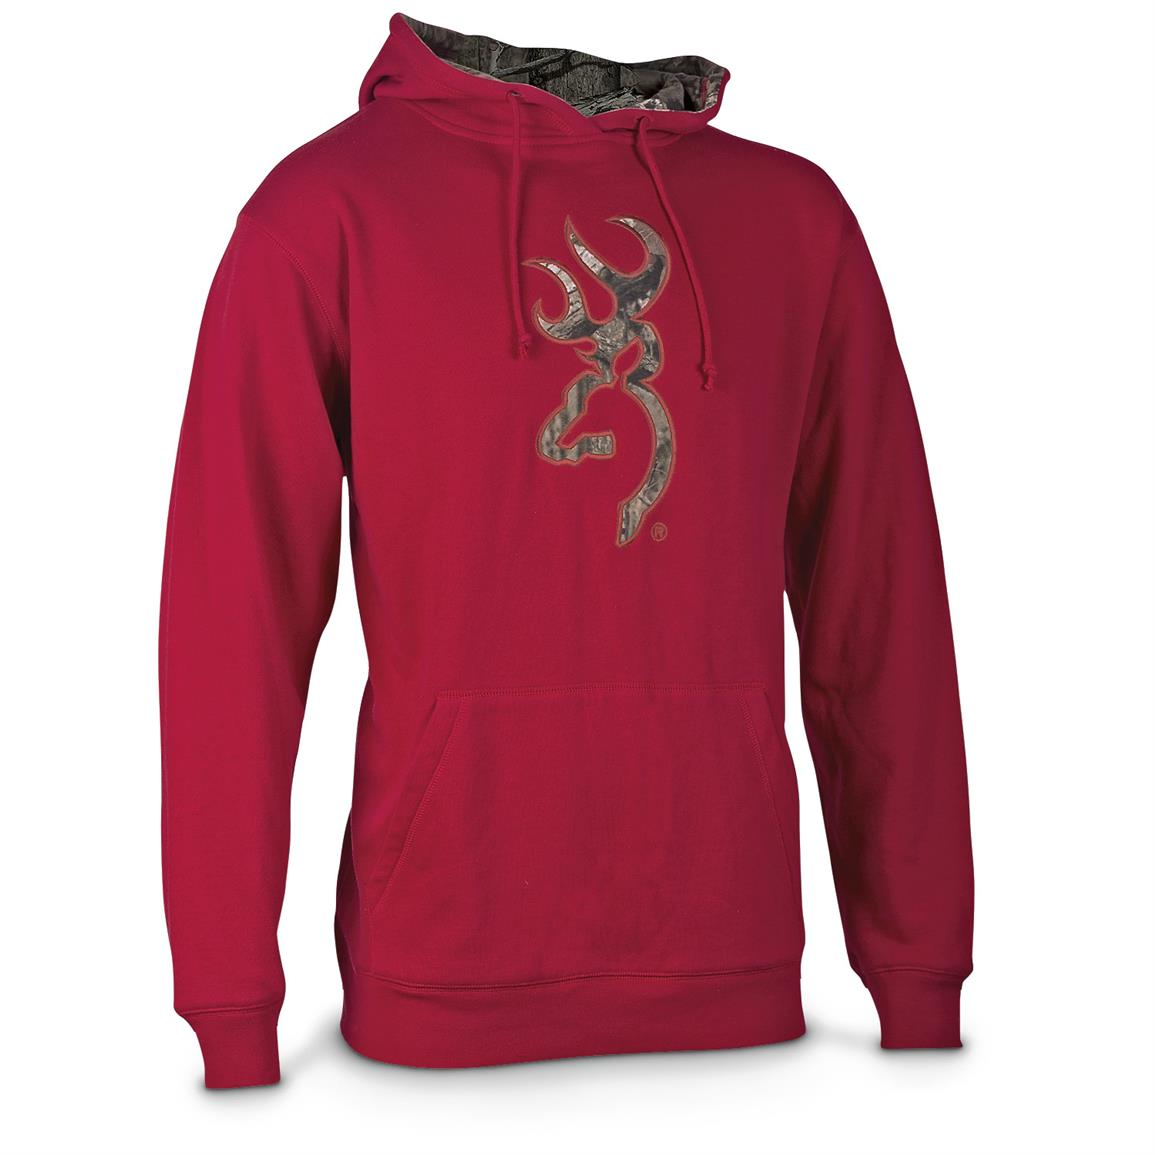 Browning Men's Appliqué Buckmark Hoodie Jacket, Chili Pepper / Mossy Oak Infinity